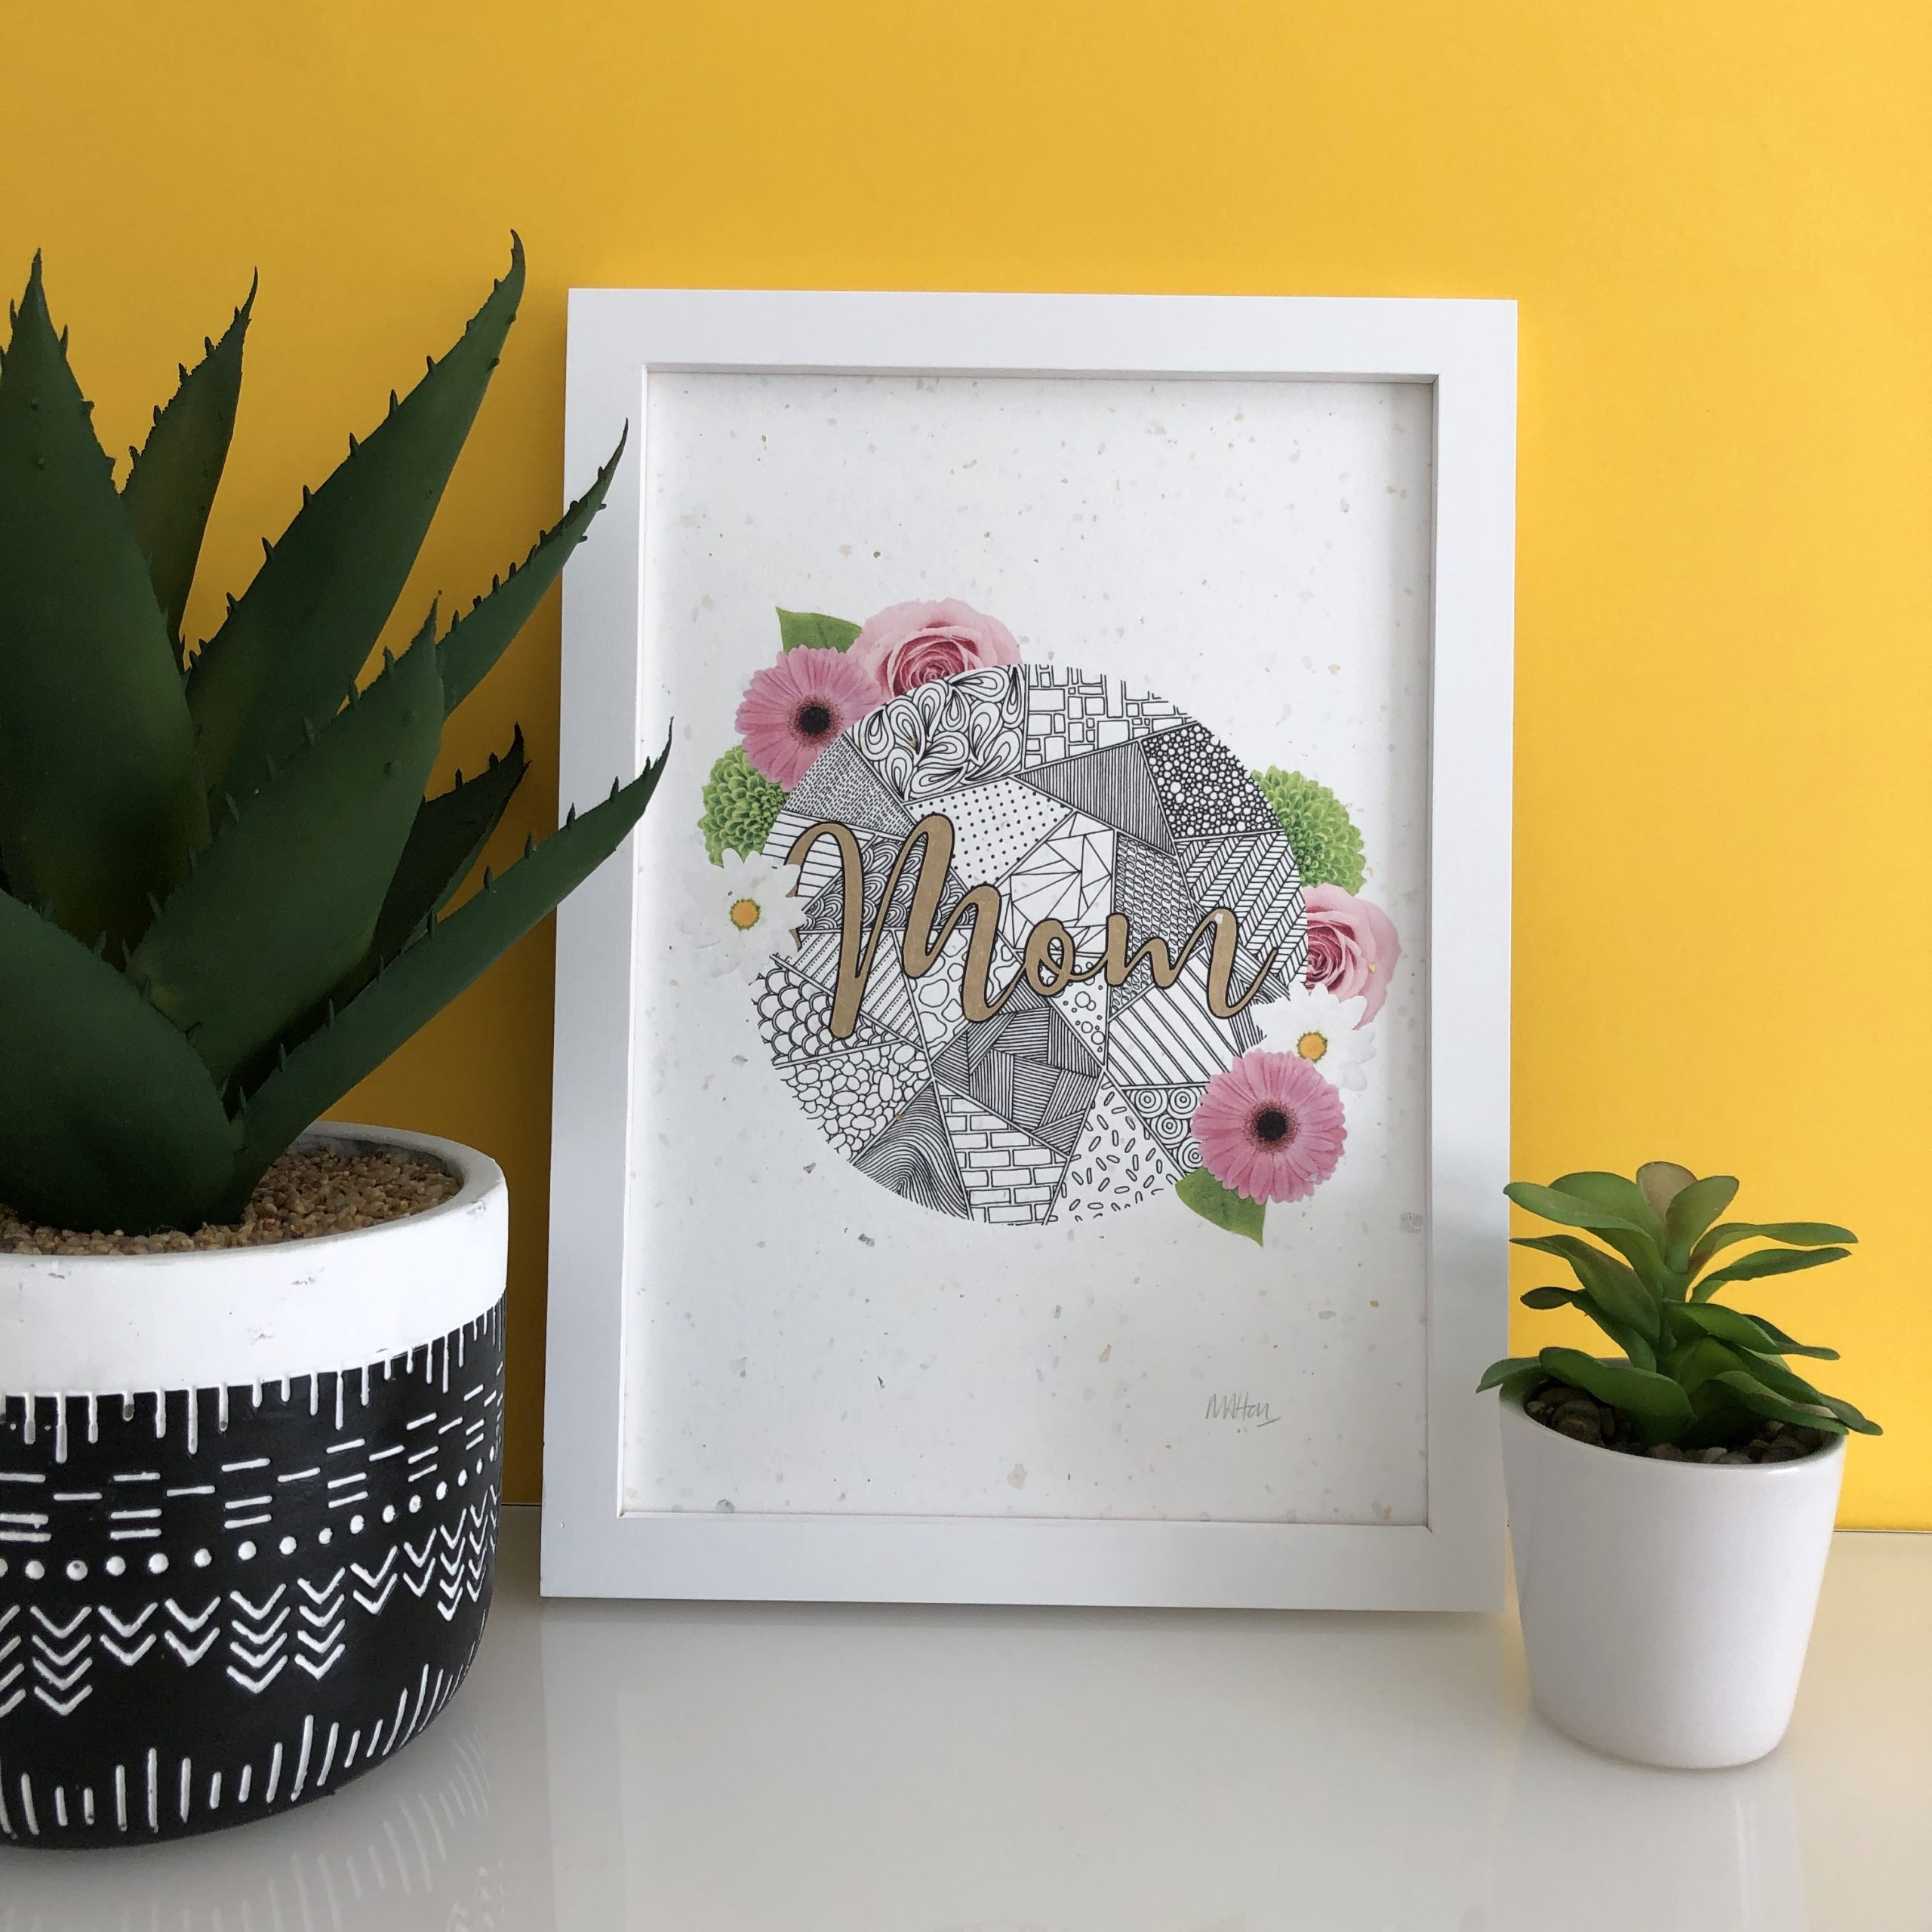 This gorgeous A4 art print features zentangle inspired patterns decorated with pink gerberas, pink roses and daisies, hand-finished with metallic gold detailing to the letters. The design is printed onto exquisite, handmade paper featuring flecks of gold and silver foil throughout.